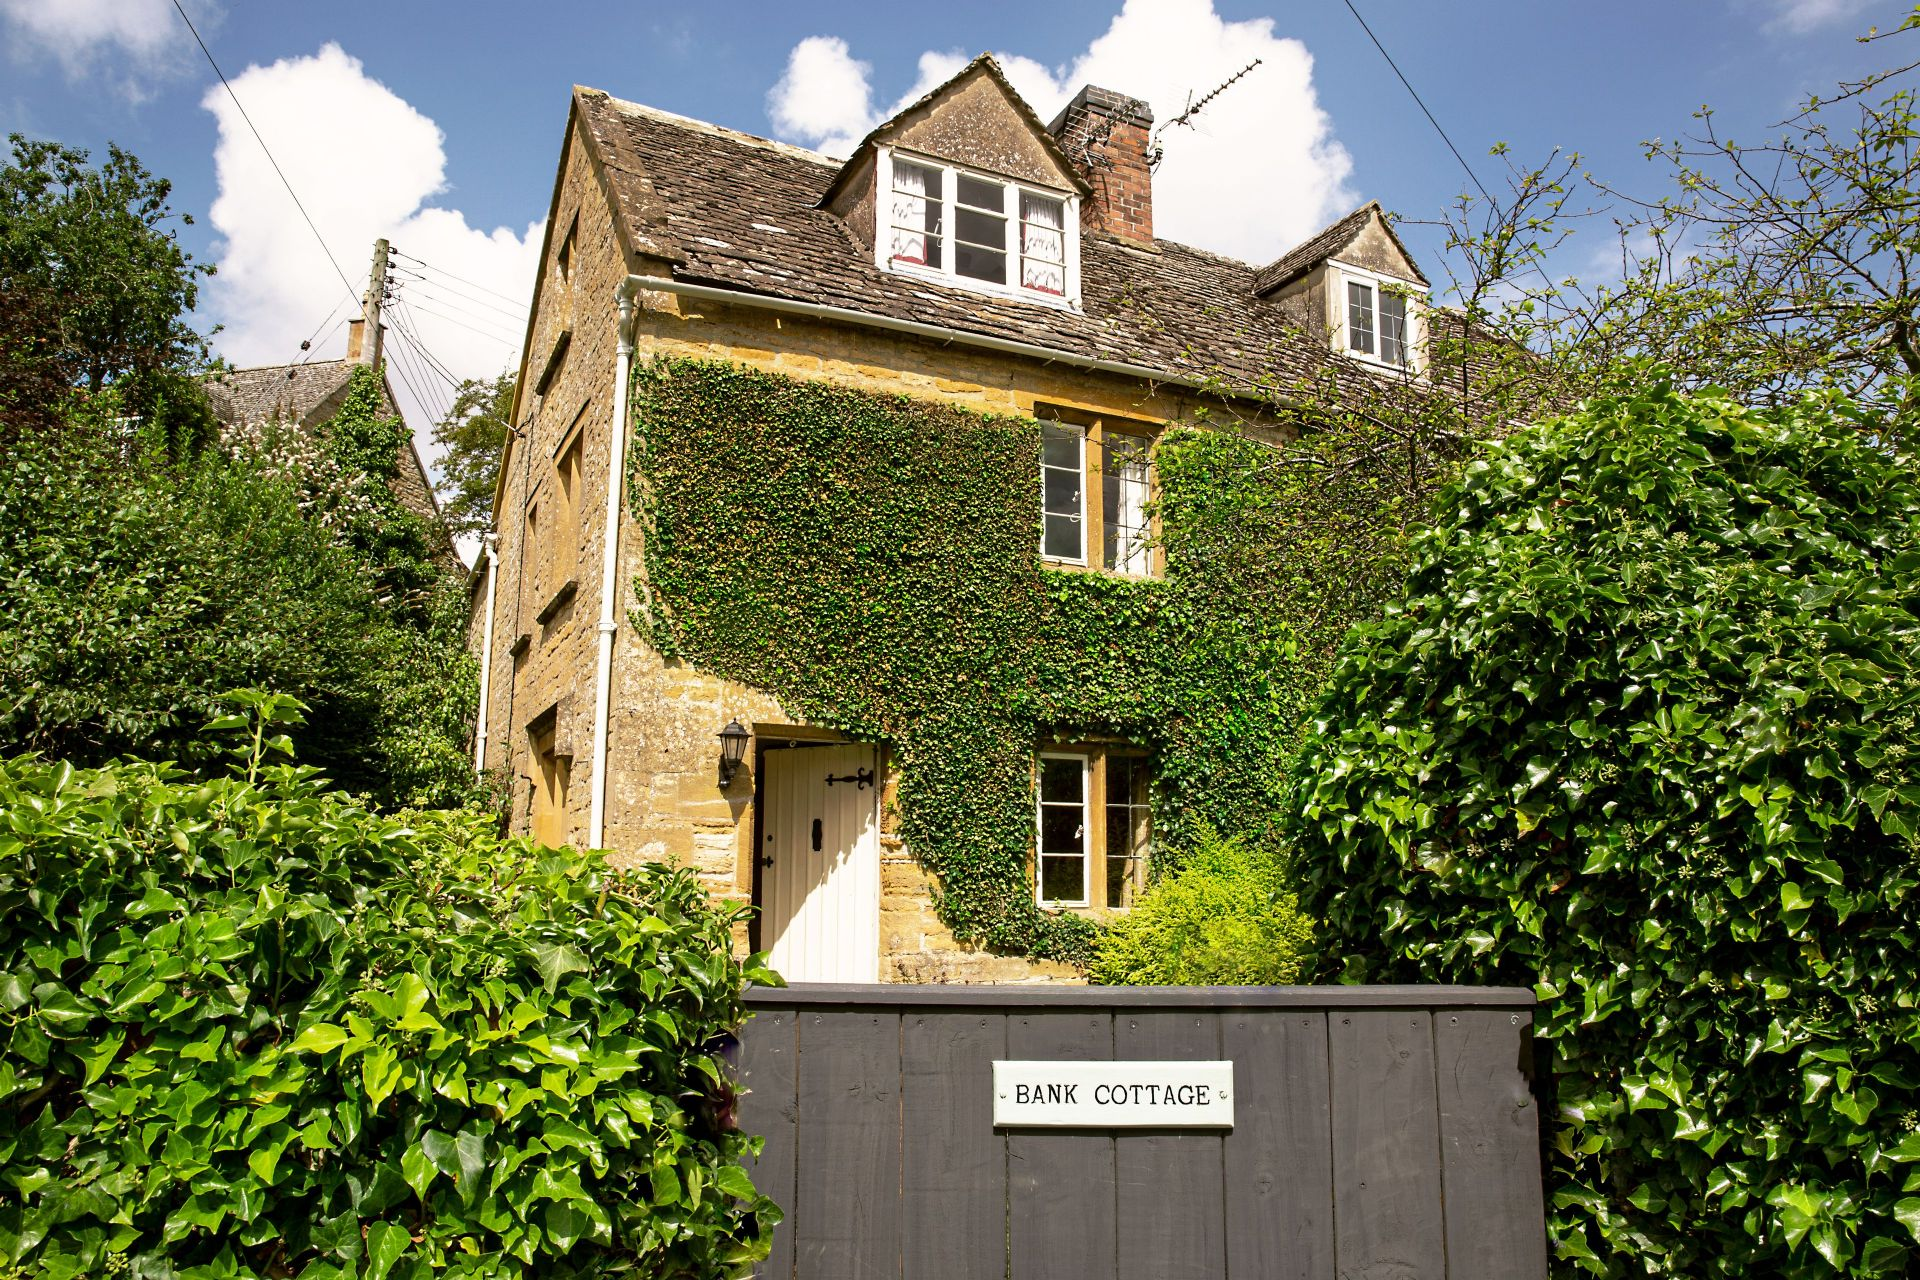 More information about Bank Cottage (Longborough) - ideal for a family holiday